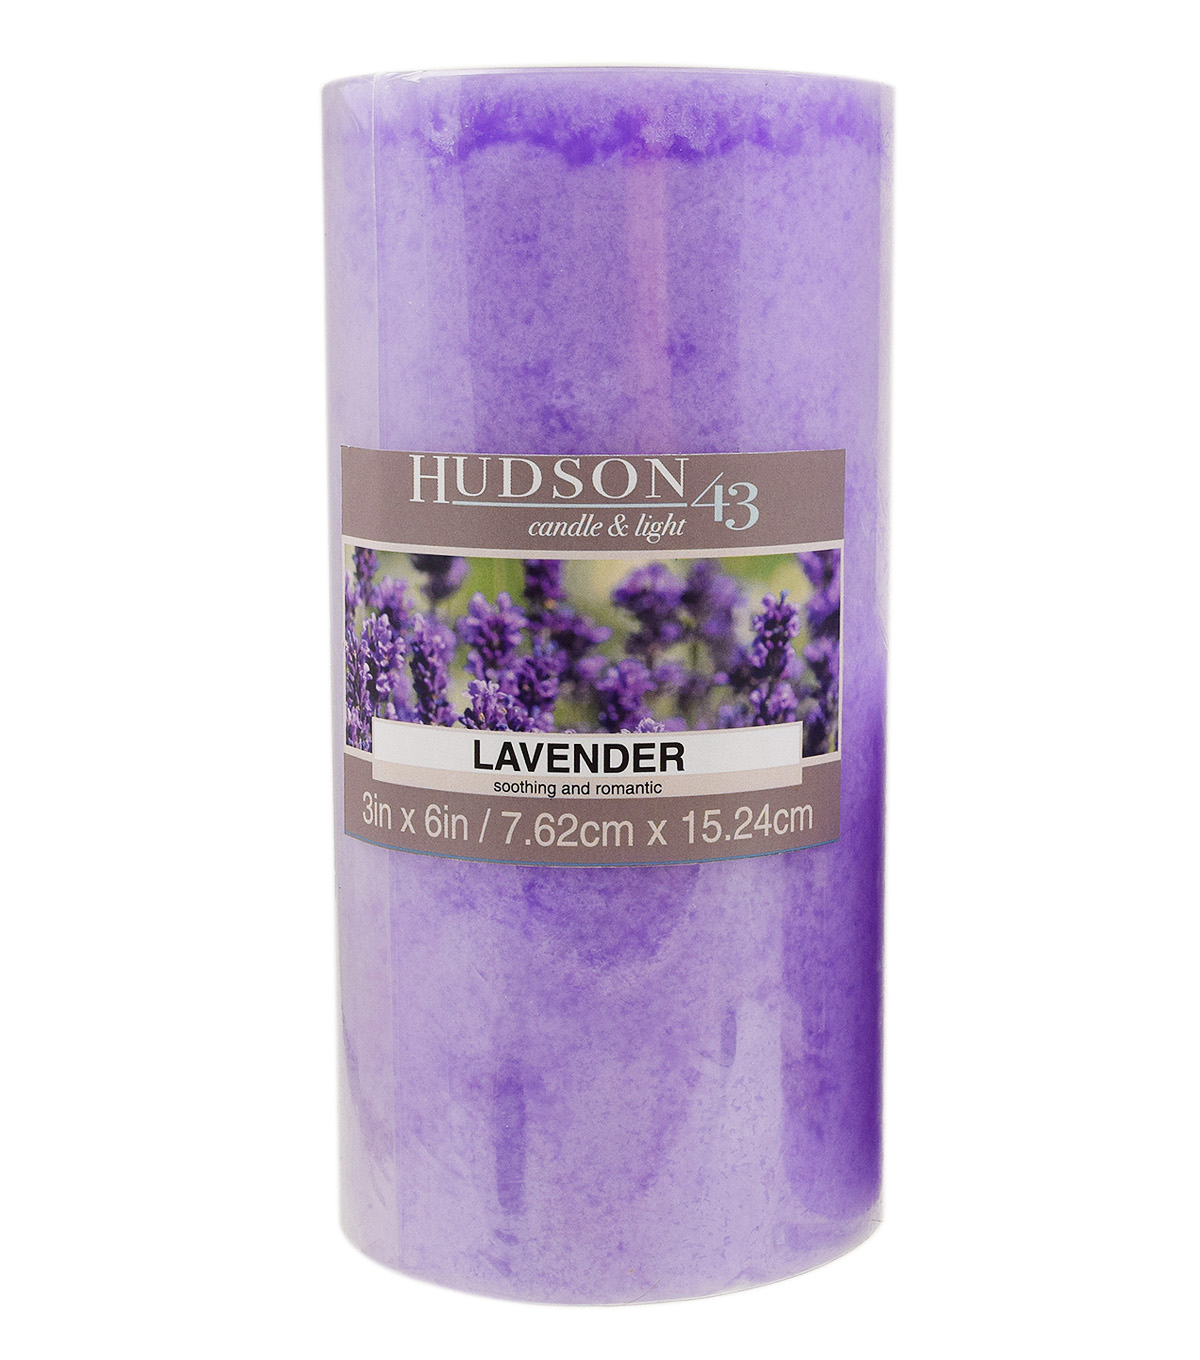 Hudson 43™ Candle & Light Collection 3X6 Pillar Lavender